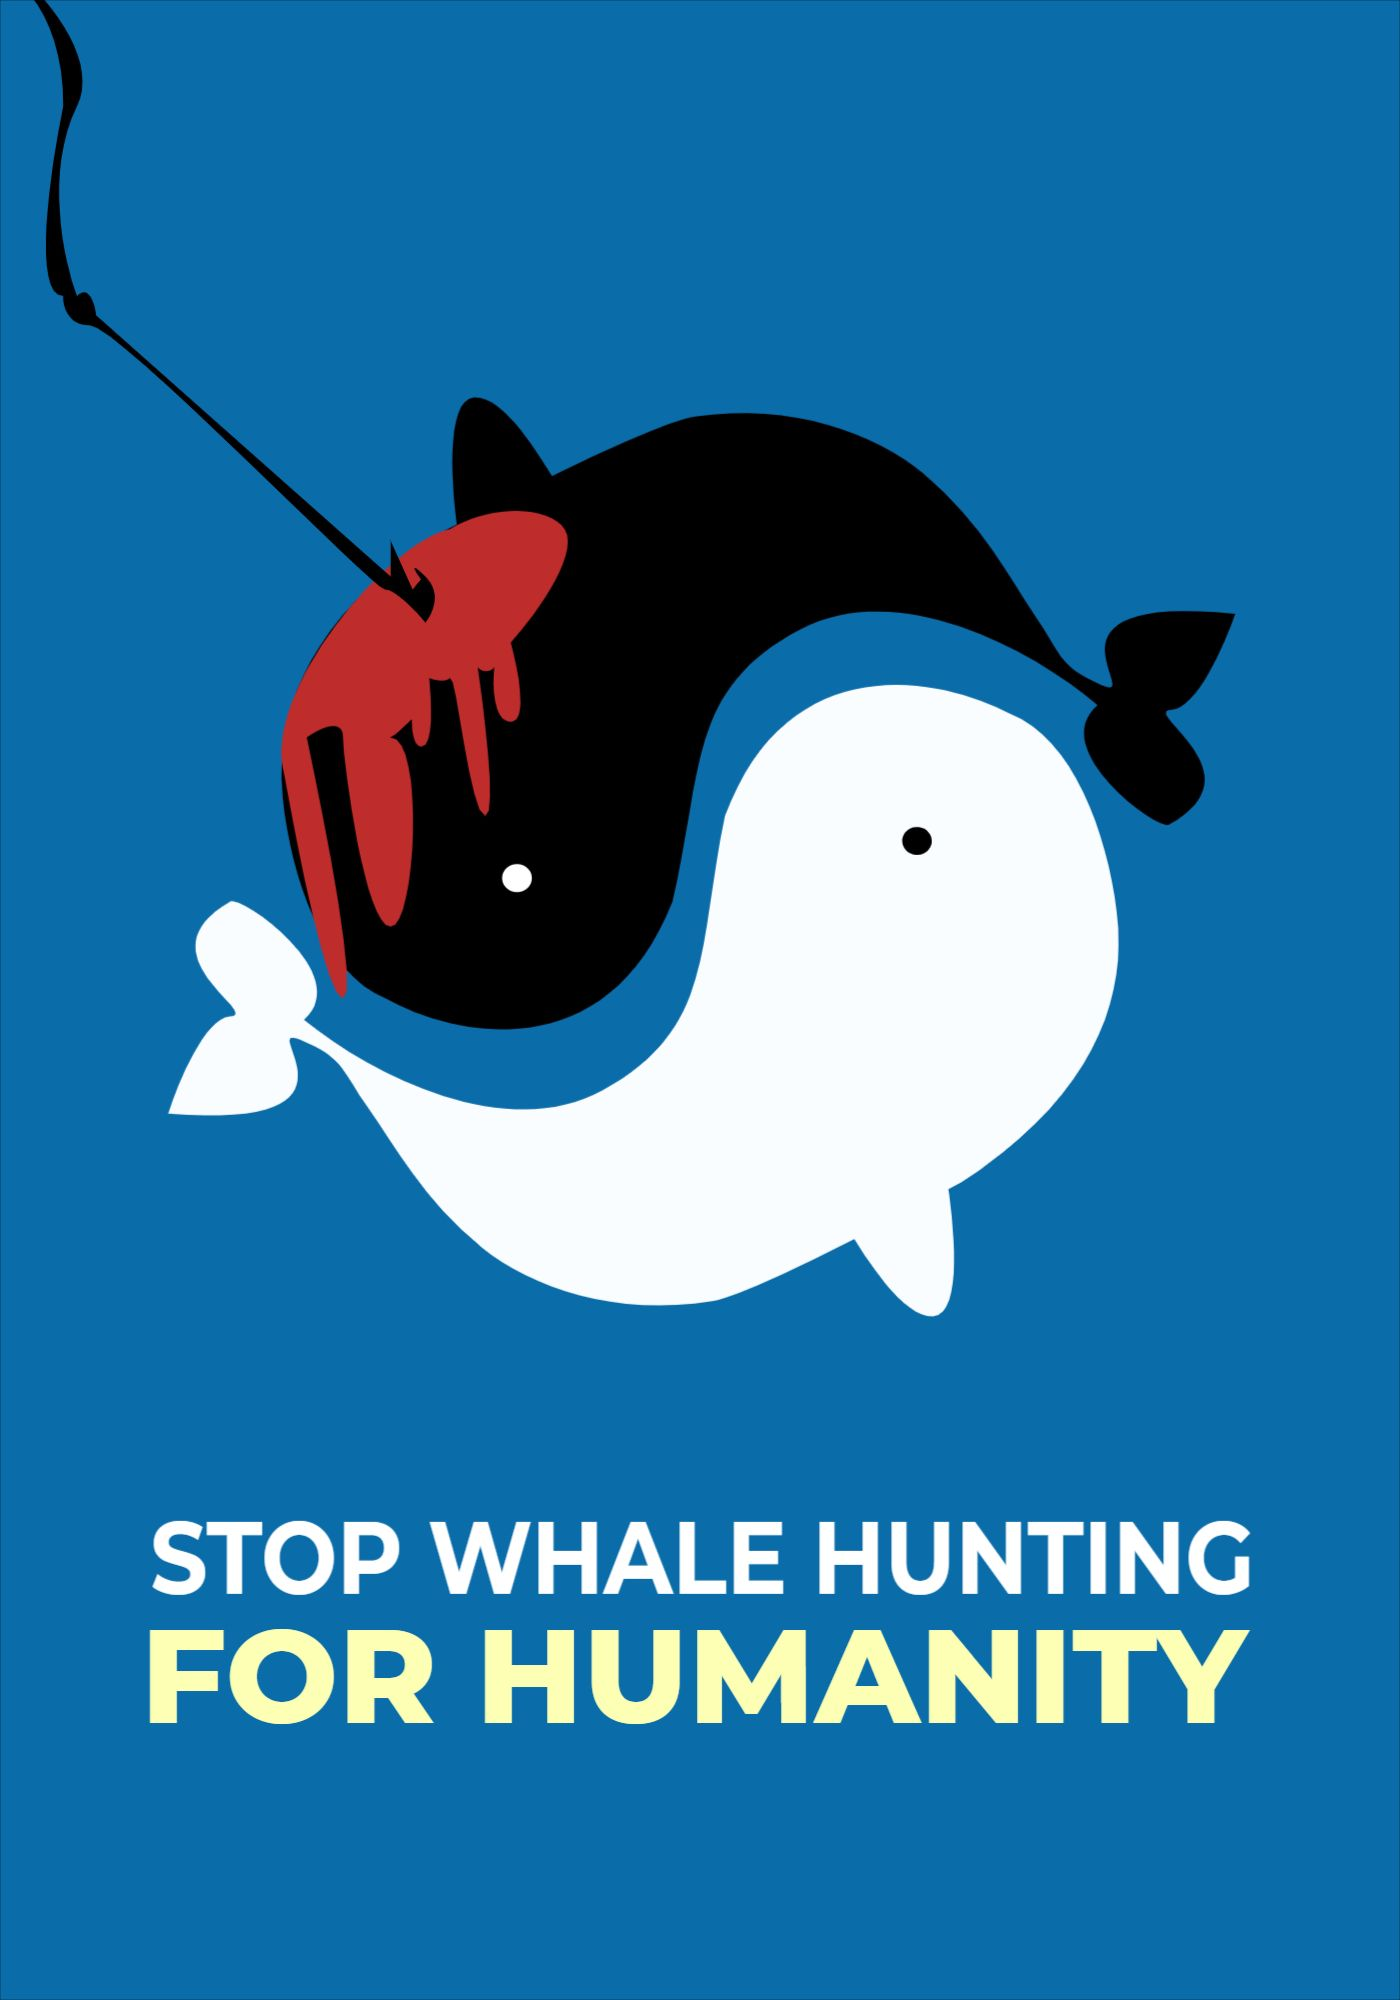 Poster Whale Hunting Template